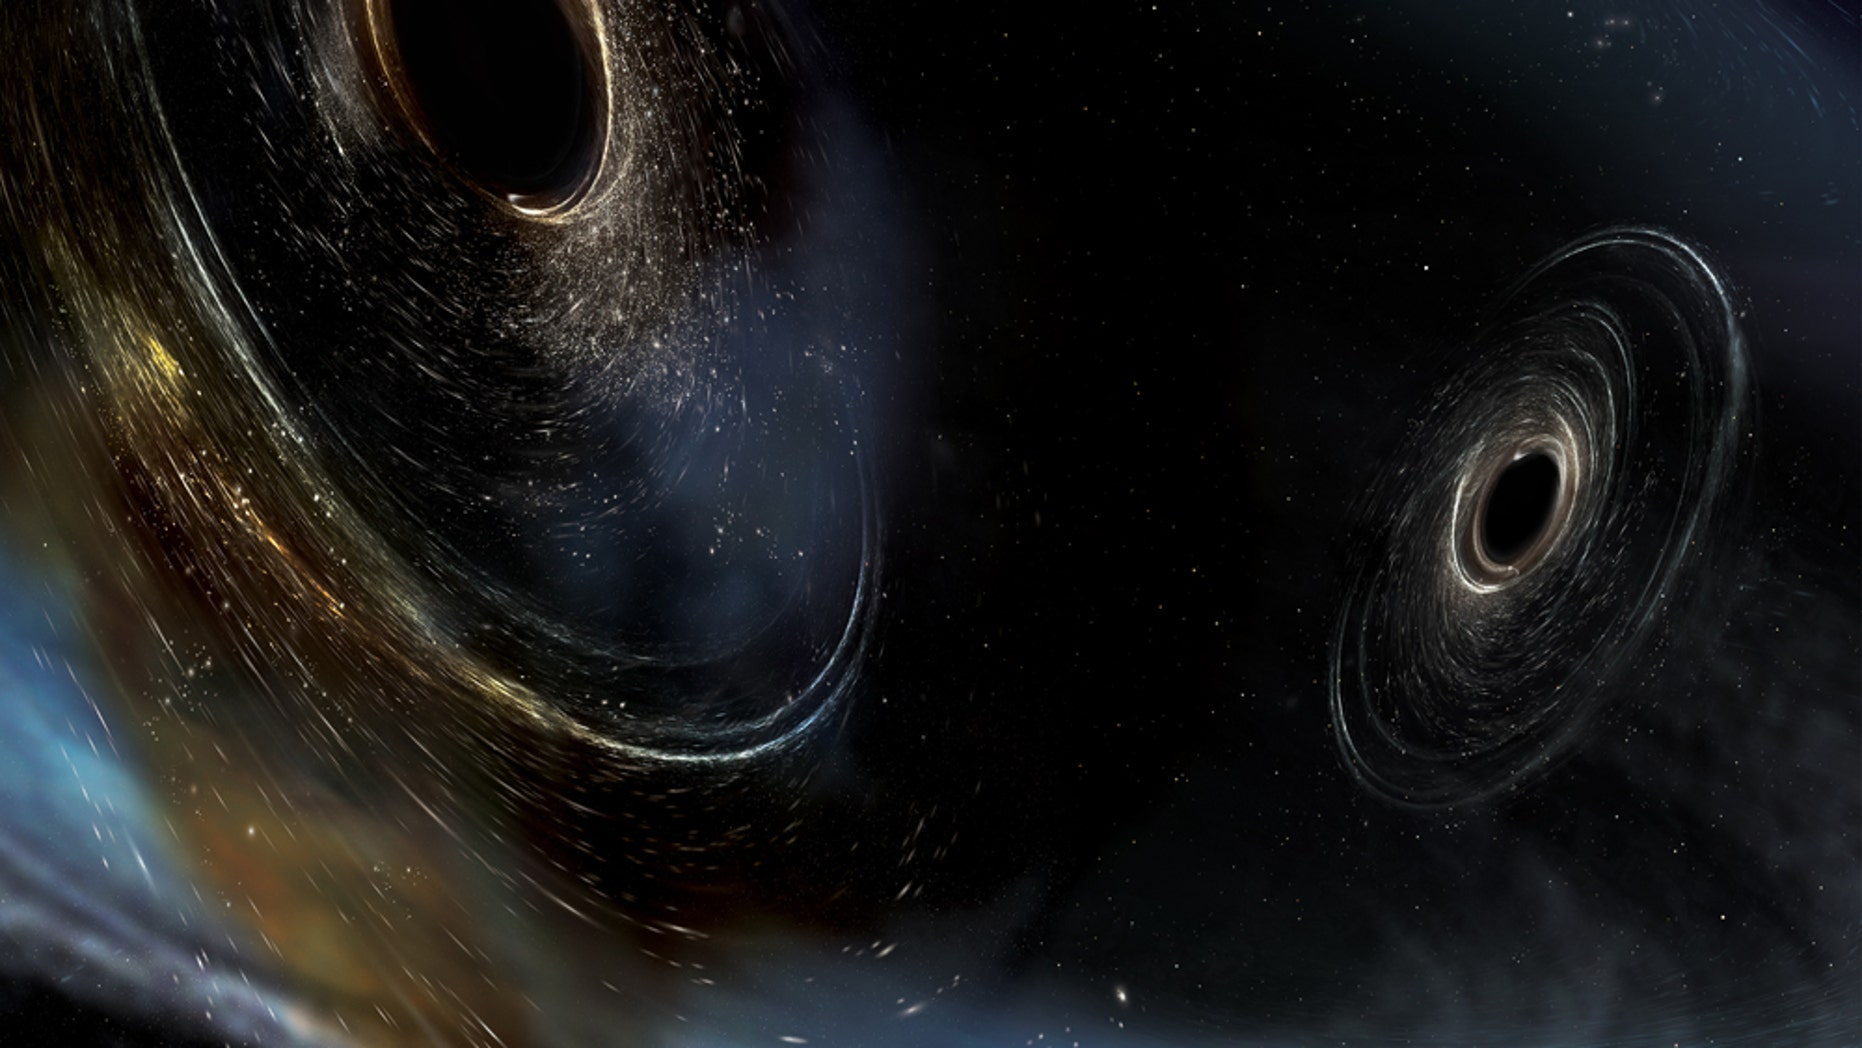 An artist's simulation of two black holes merging in space. The gravity of a black hole is strong enough to warp space, creating the swirling effect around both objects.